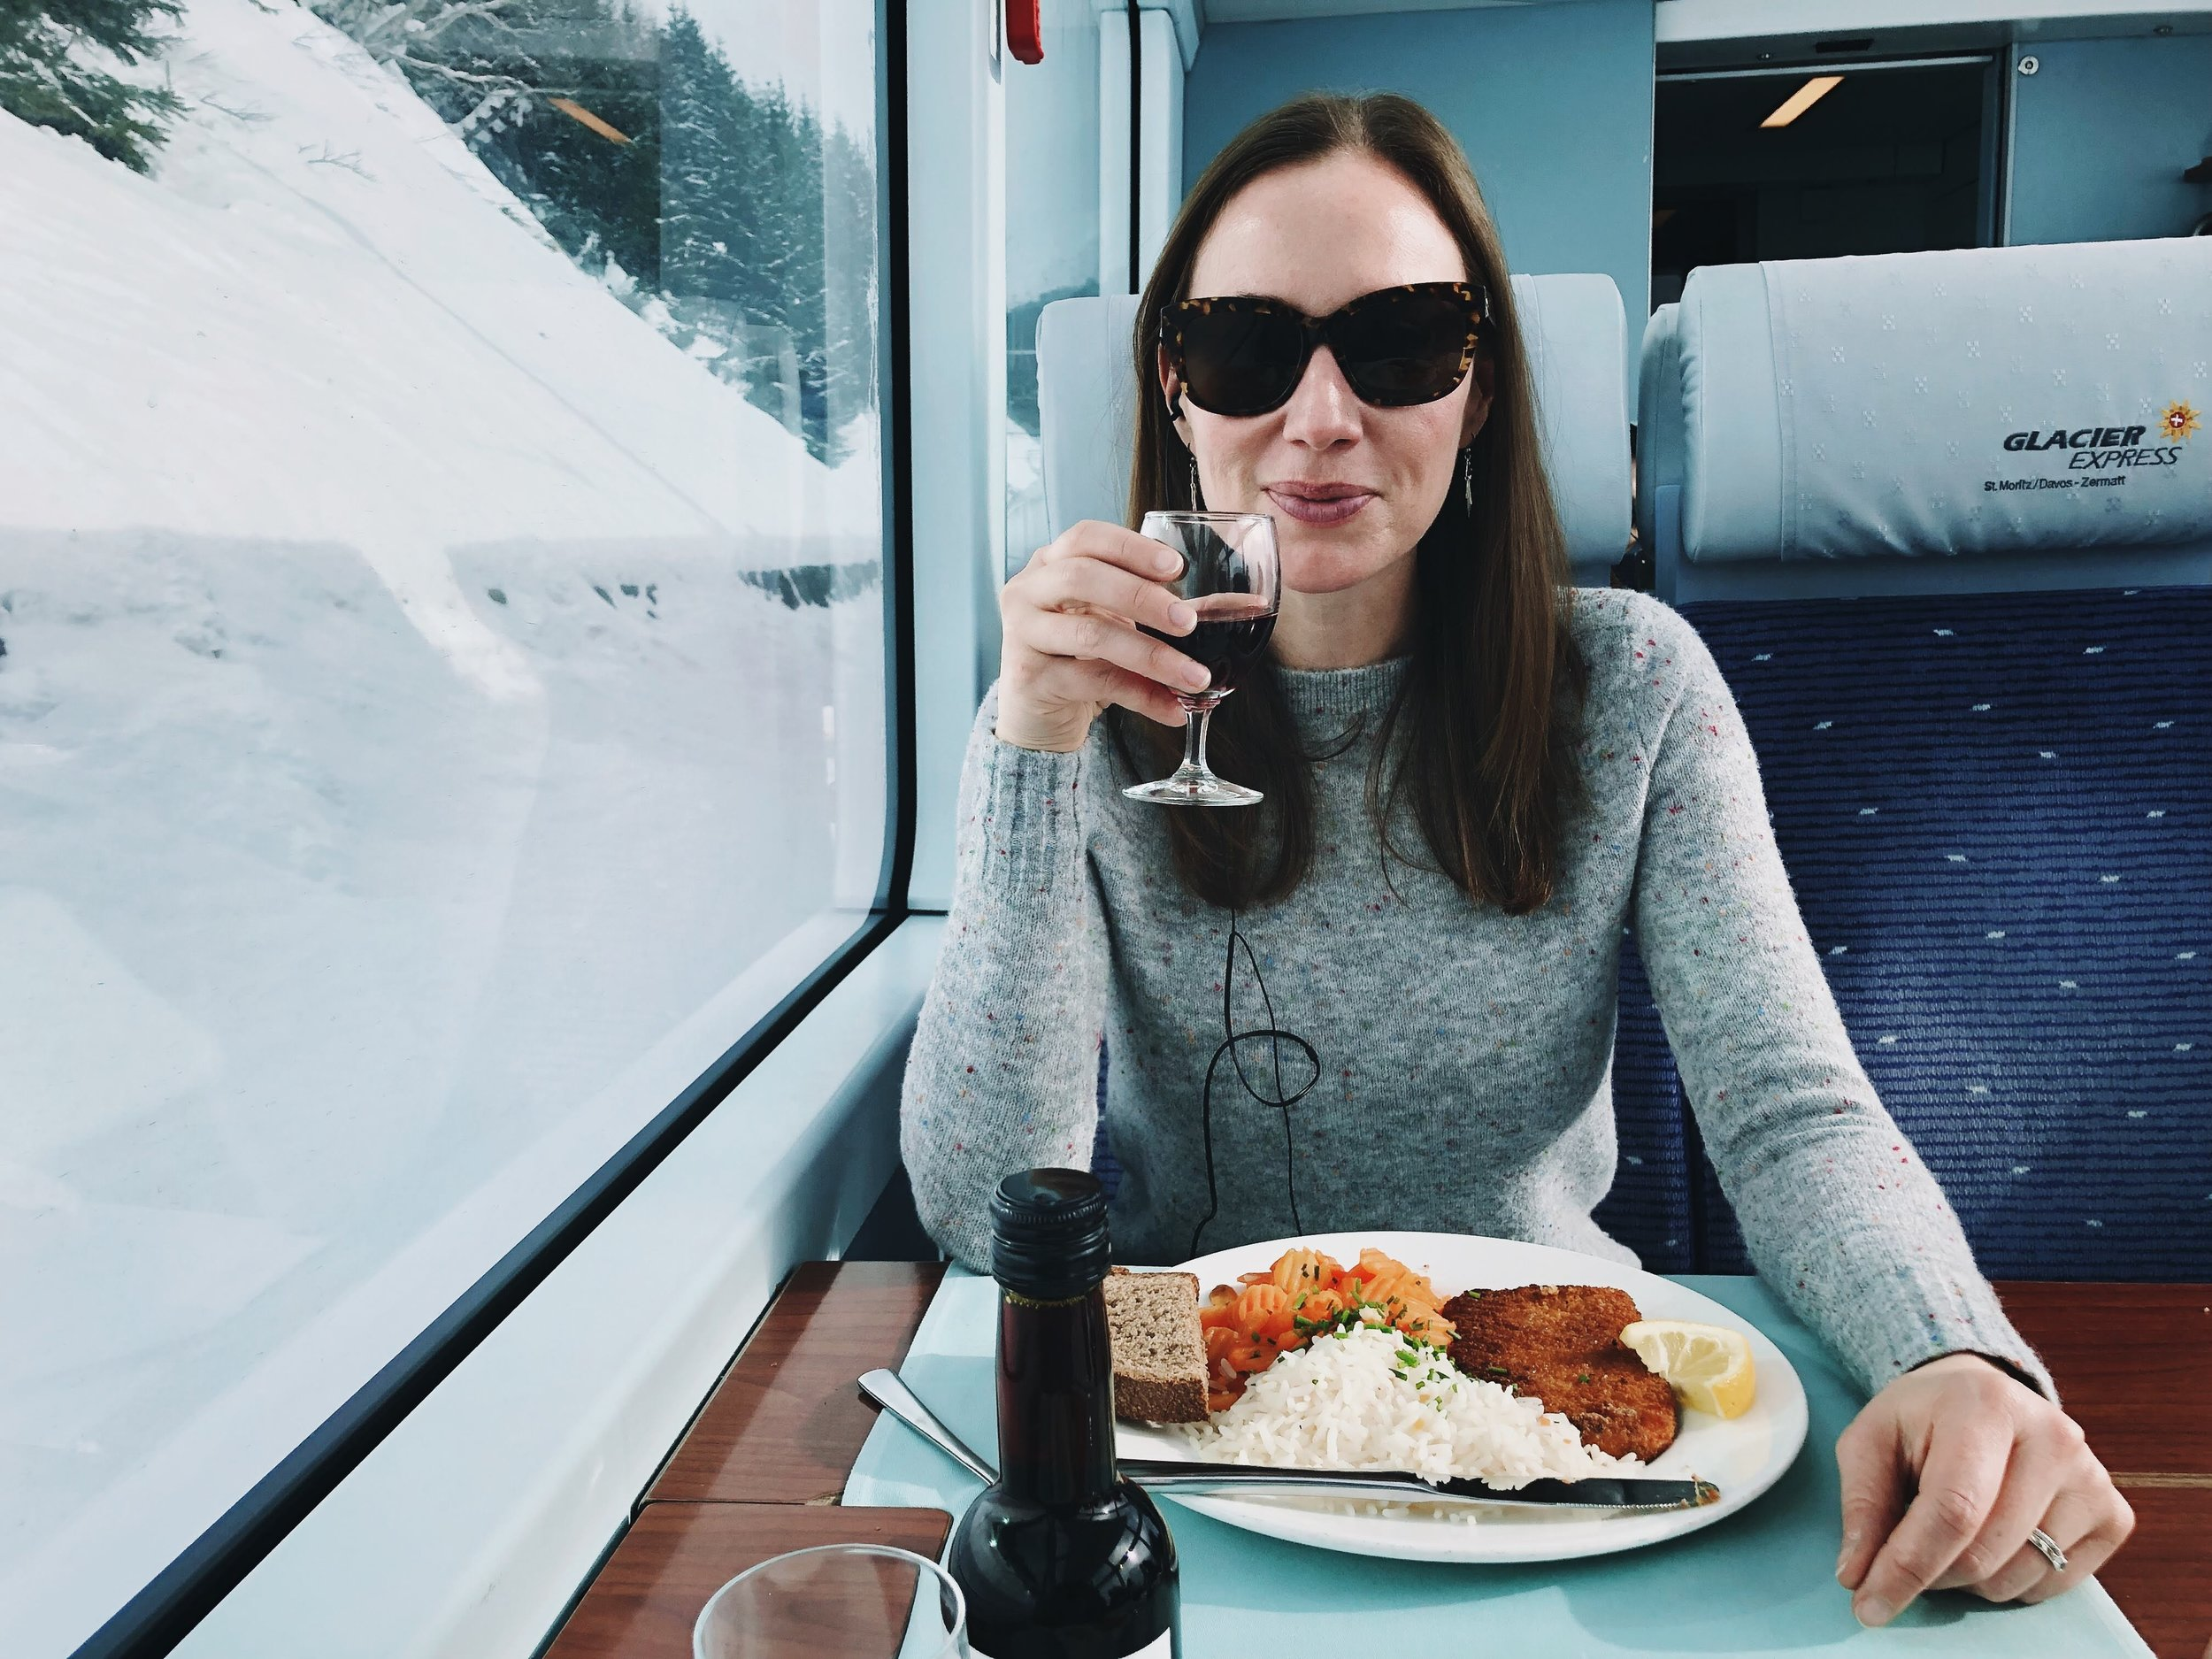 Lunch on the Glacier Express